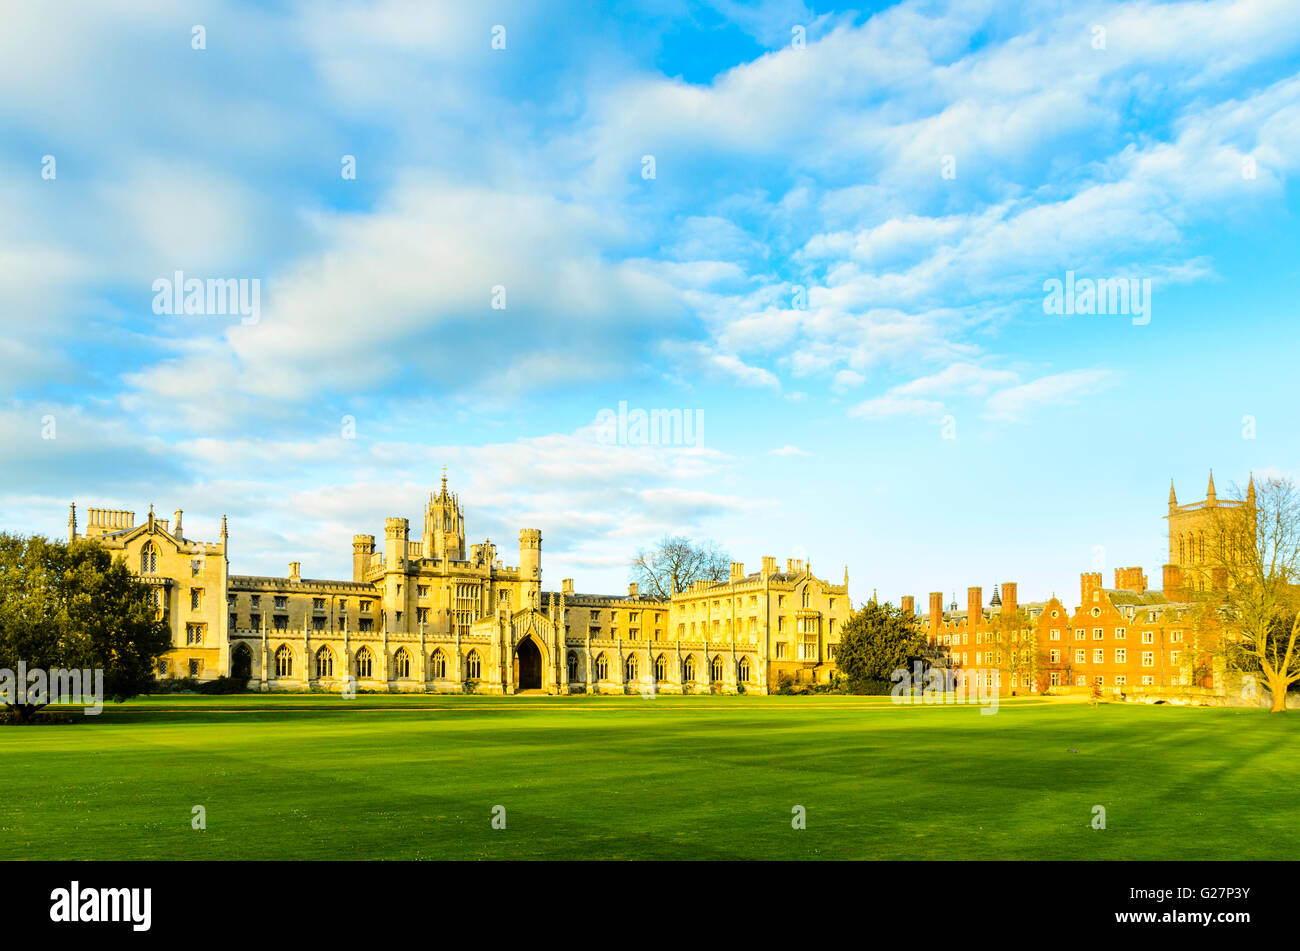 St John's College, Cambridge, England with New Court at centre to left and the Chapel tower showing over older buildings - Stock Image